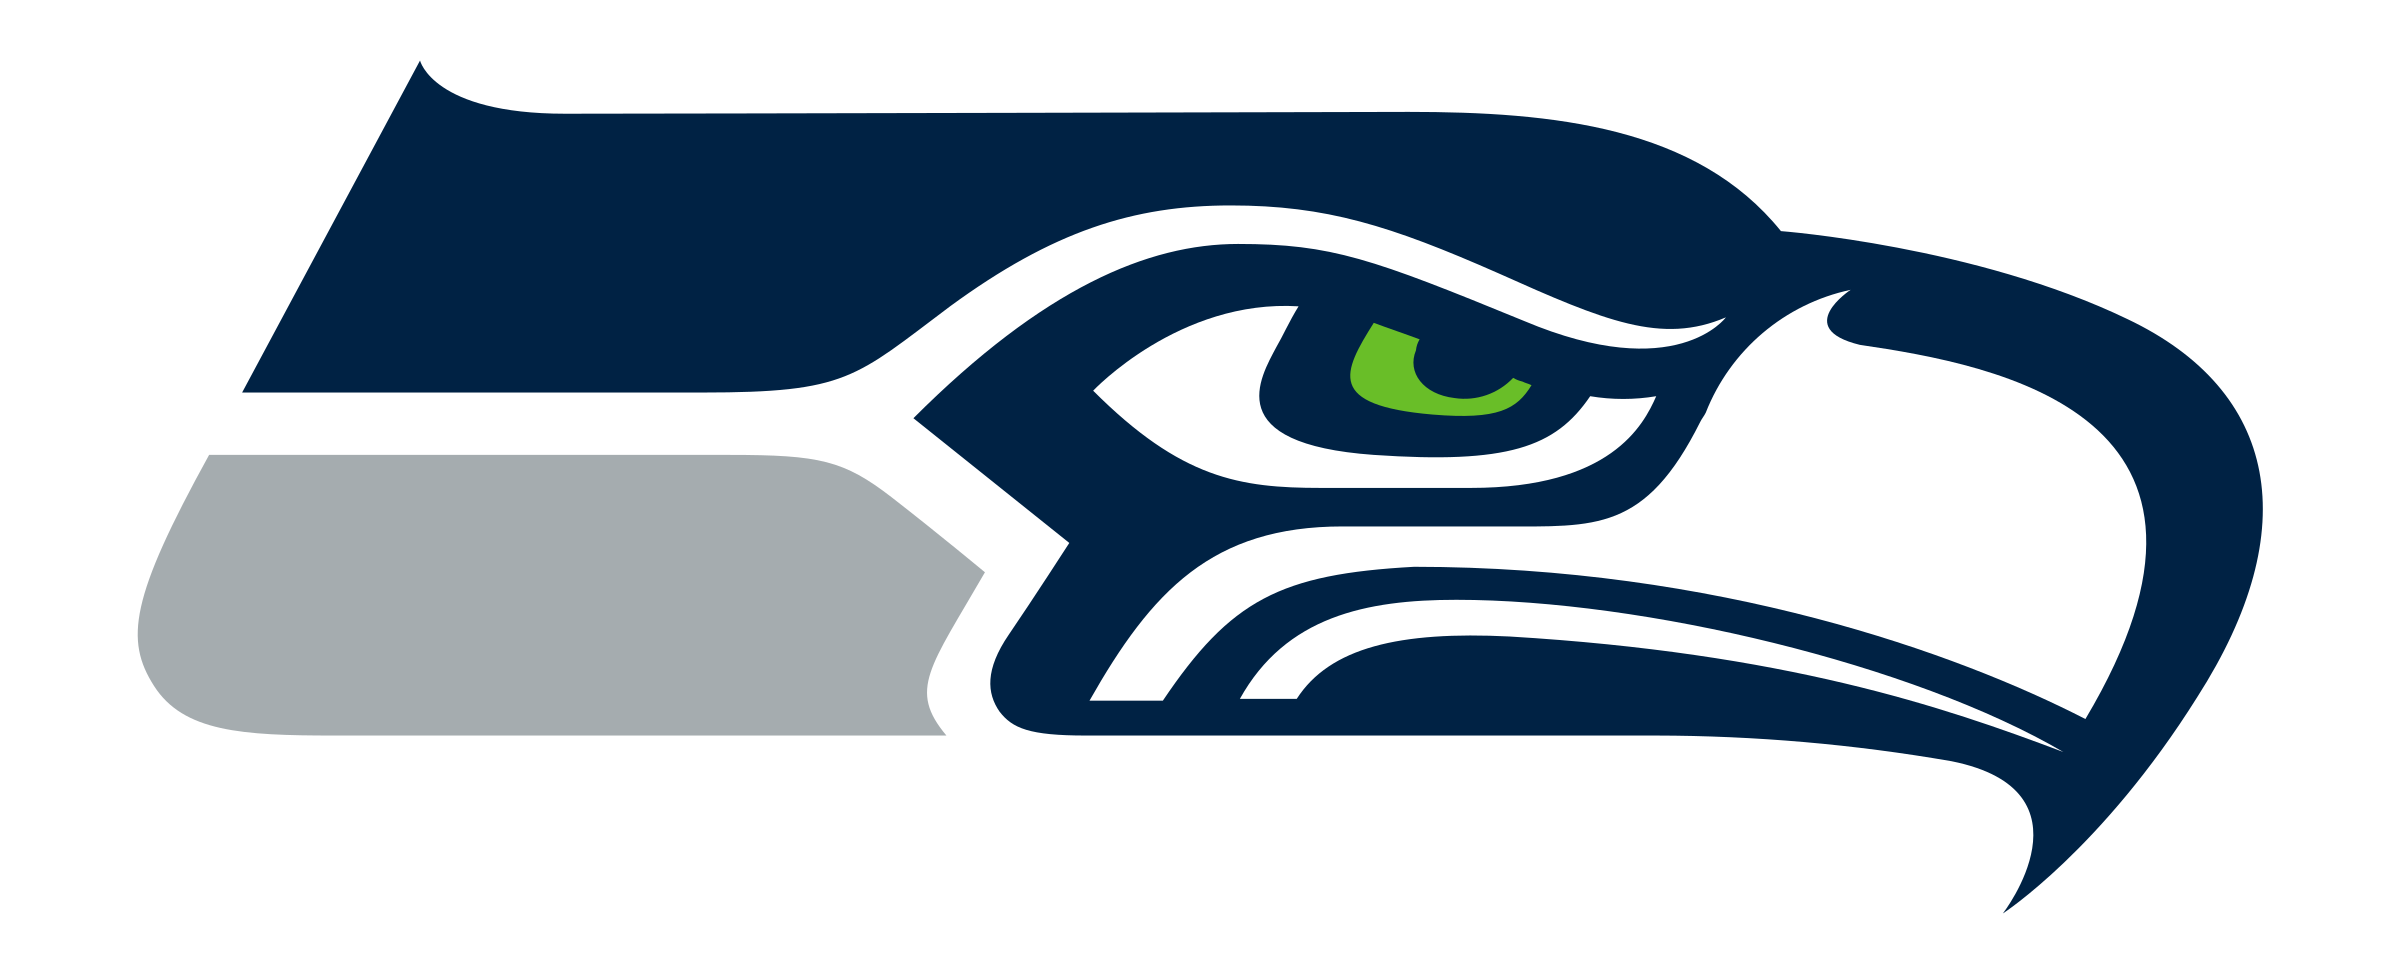 Seahawks logo png transparent. Seattle vector clip art free download